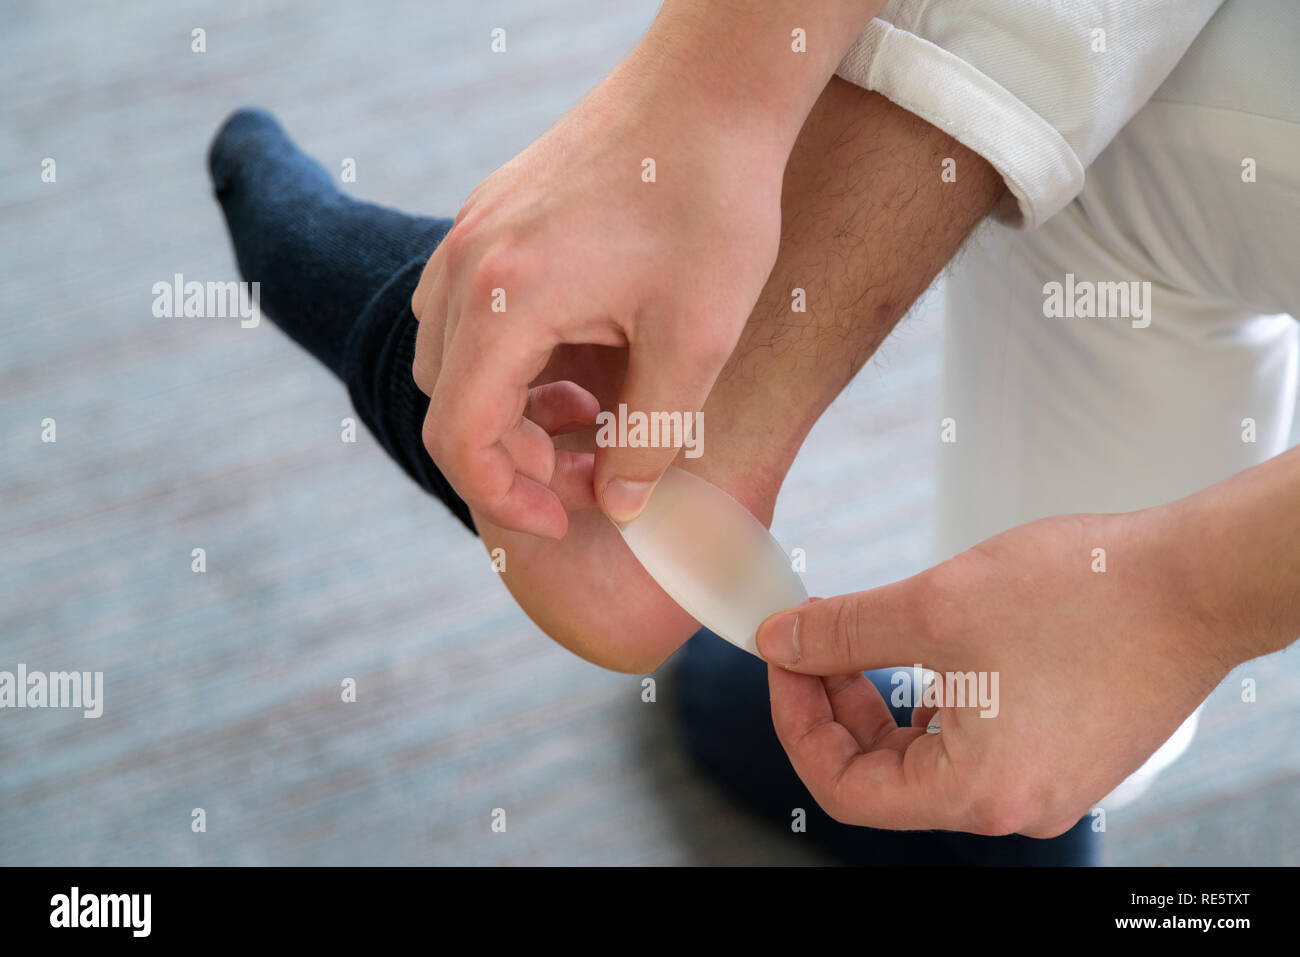 Painful Heel wound on mans feet caused by new shoes. mans hands applying plaster on terrible blister on human heel. Wet bloody painful skin on man foo - Stock Image